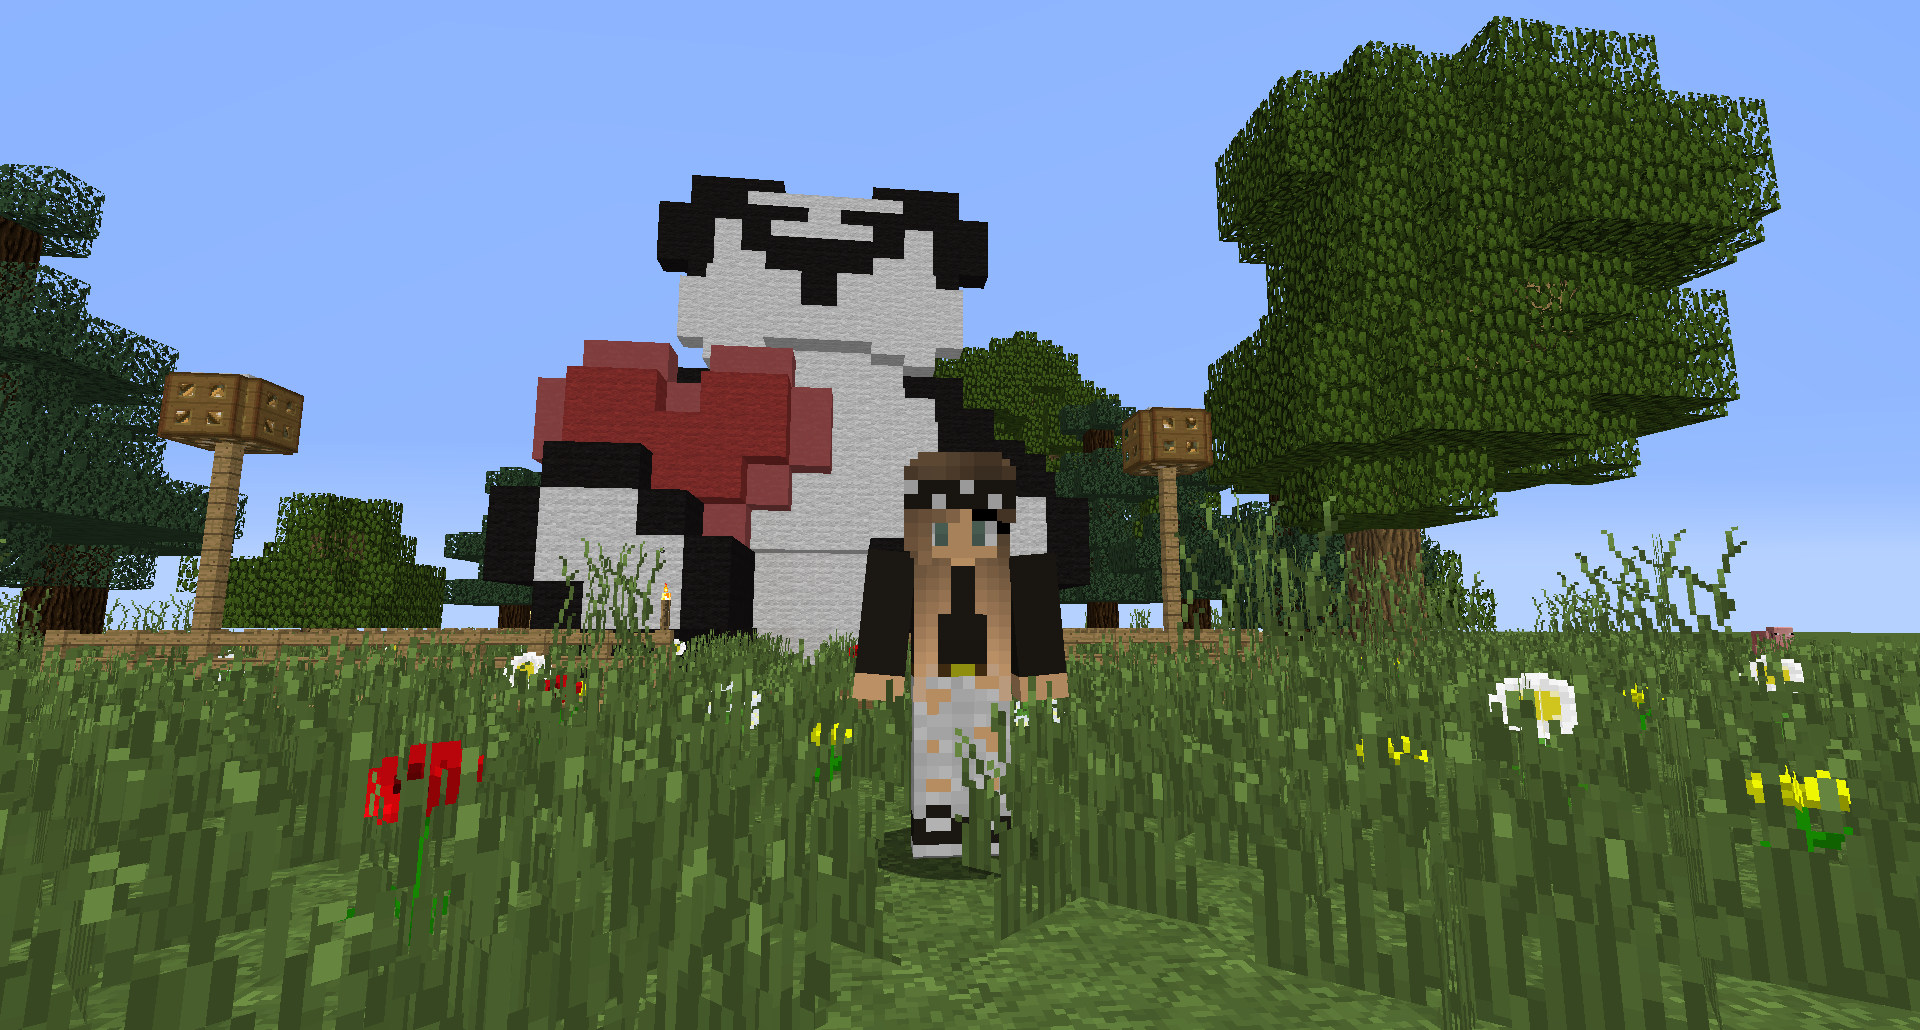 Panda Building Lollyherz Minecraft Mybuilding Heart Pandawithheart Love Request Minecraft Creations Minecraft Minecraft Buildings